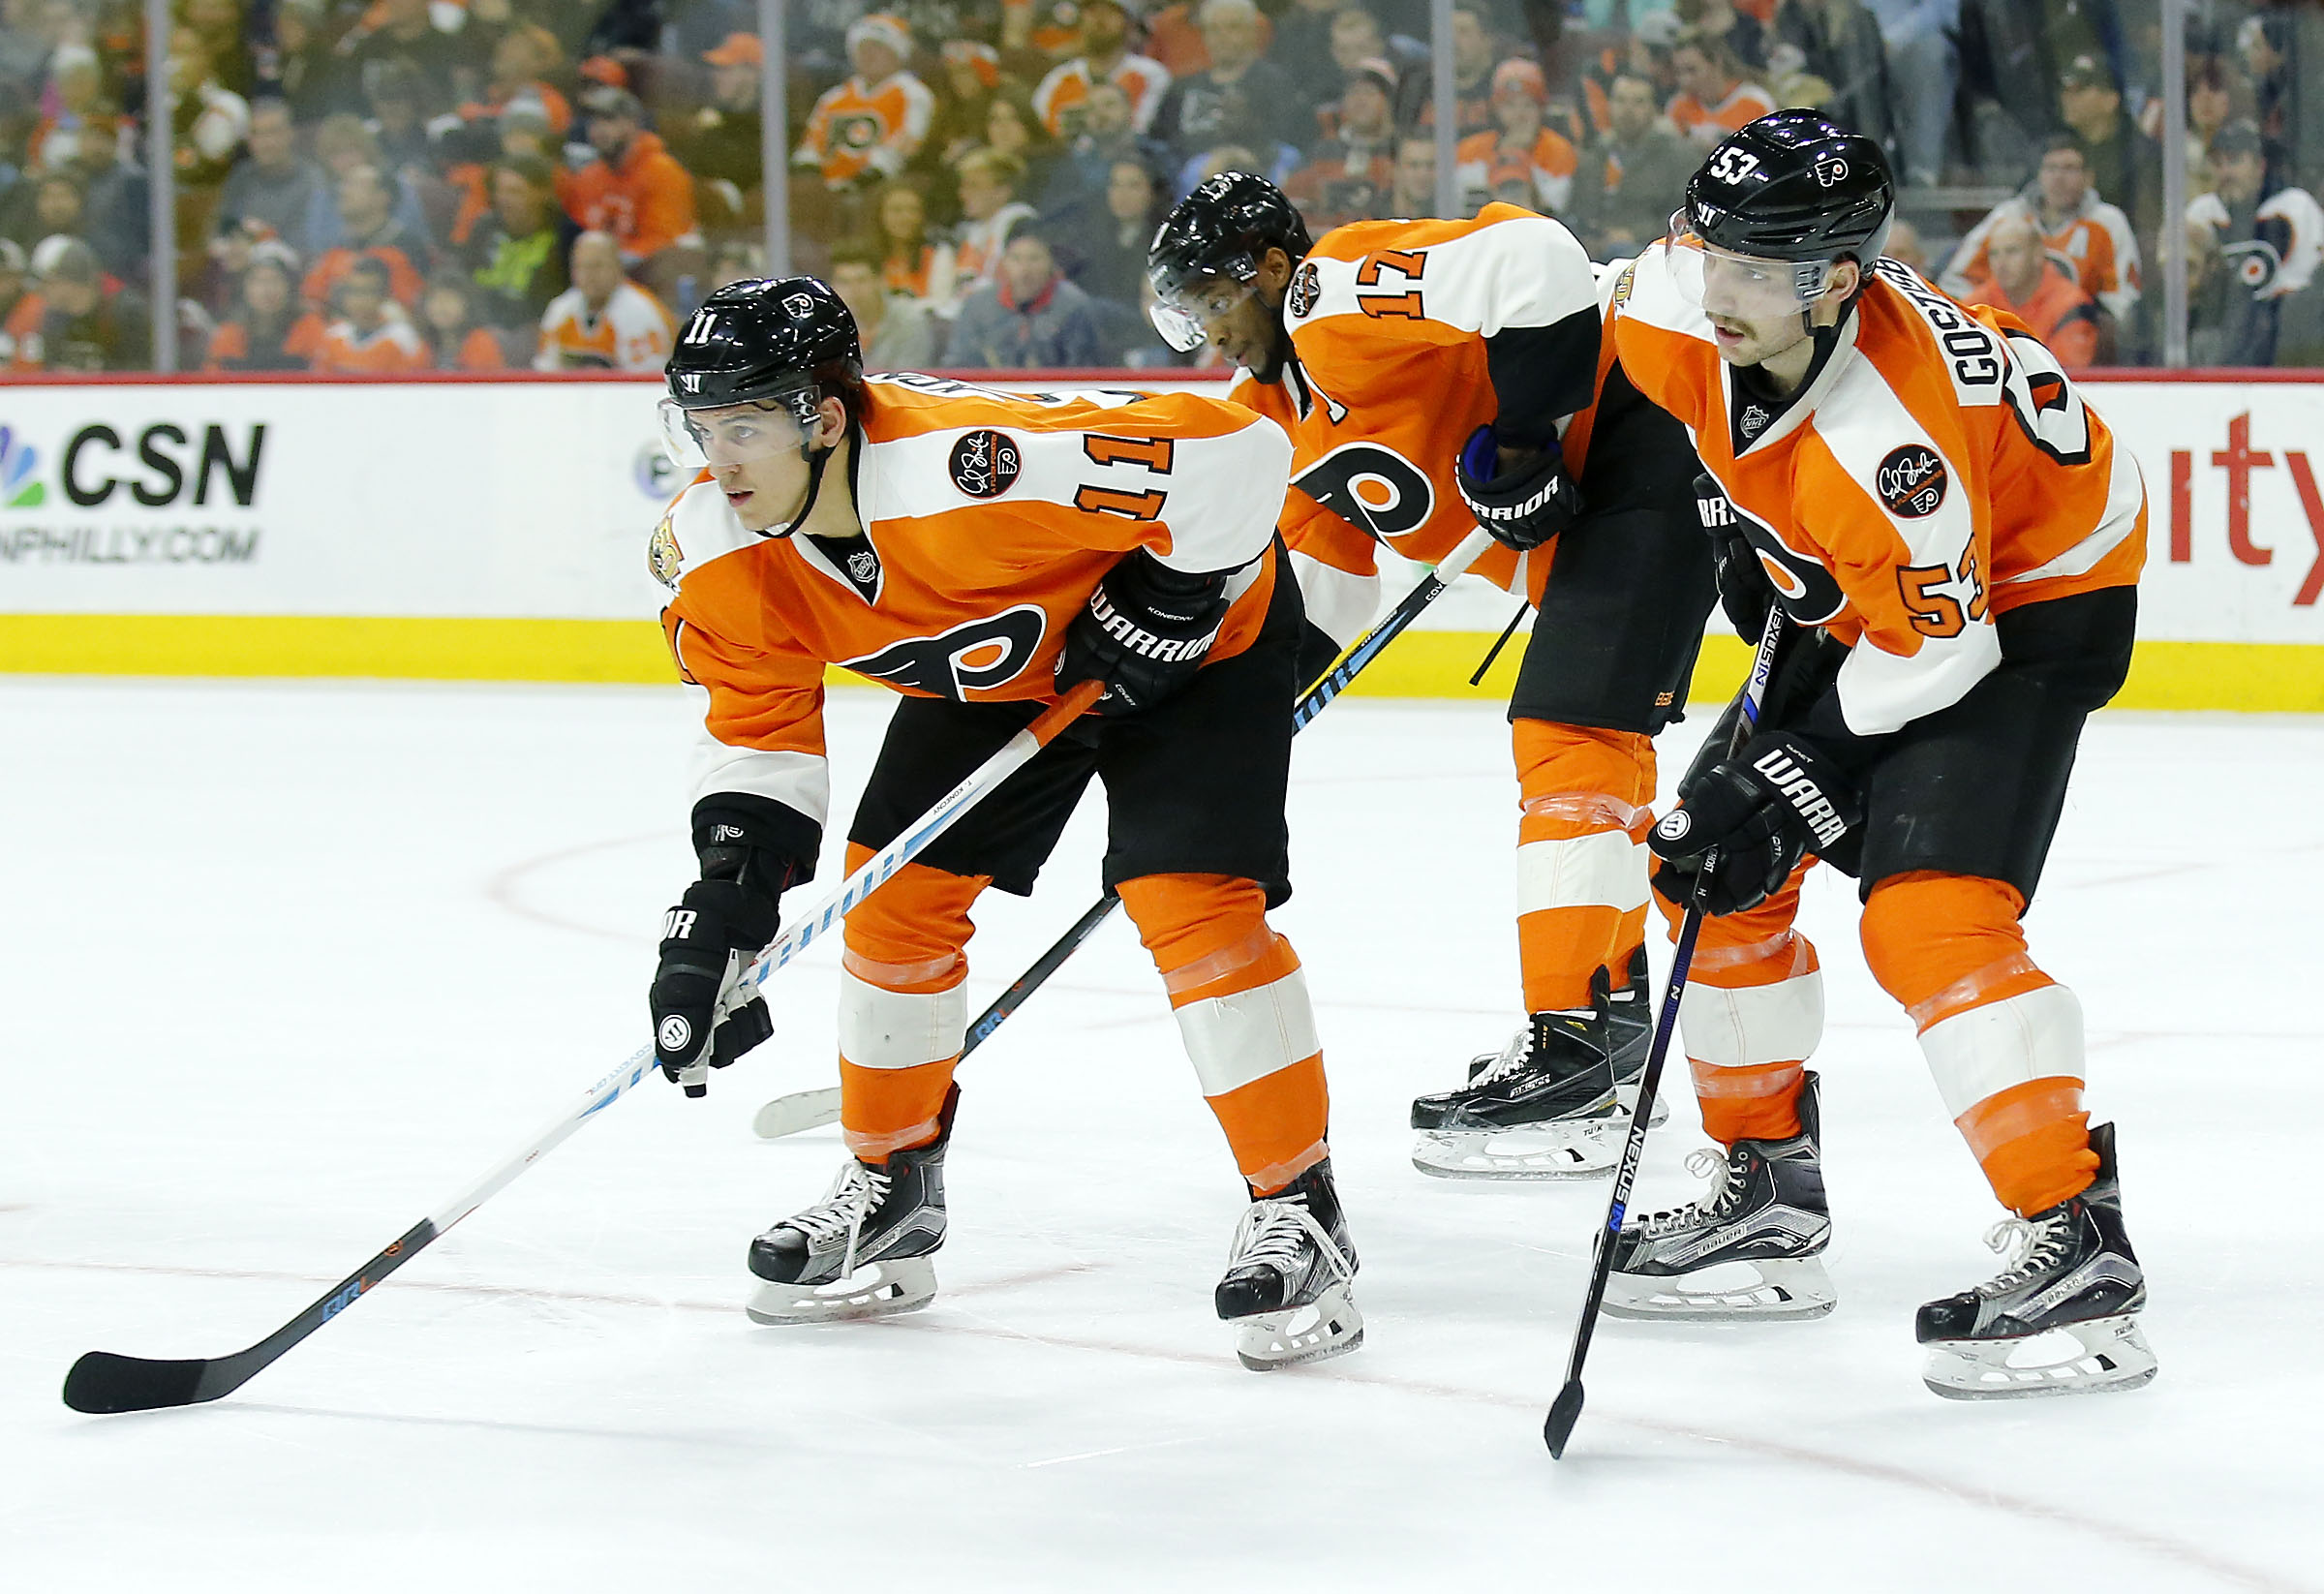 The Flyers´ Travis Konecny, Wayne Simmonds and Shayne Gostisbehere during a faceoff against the Flames in November 2016.